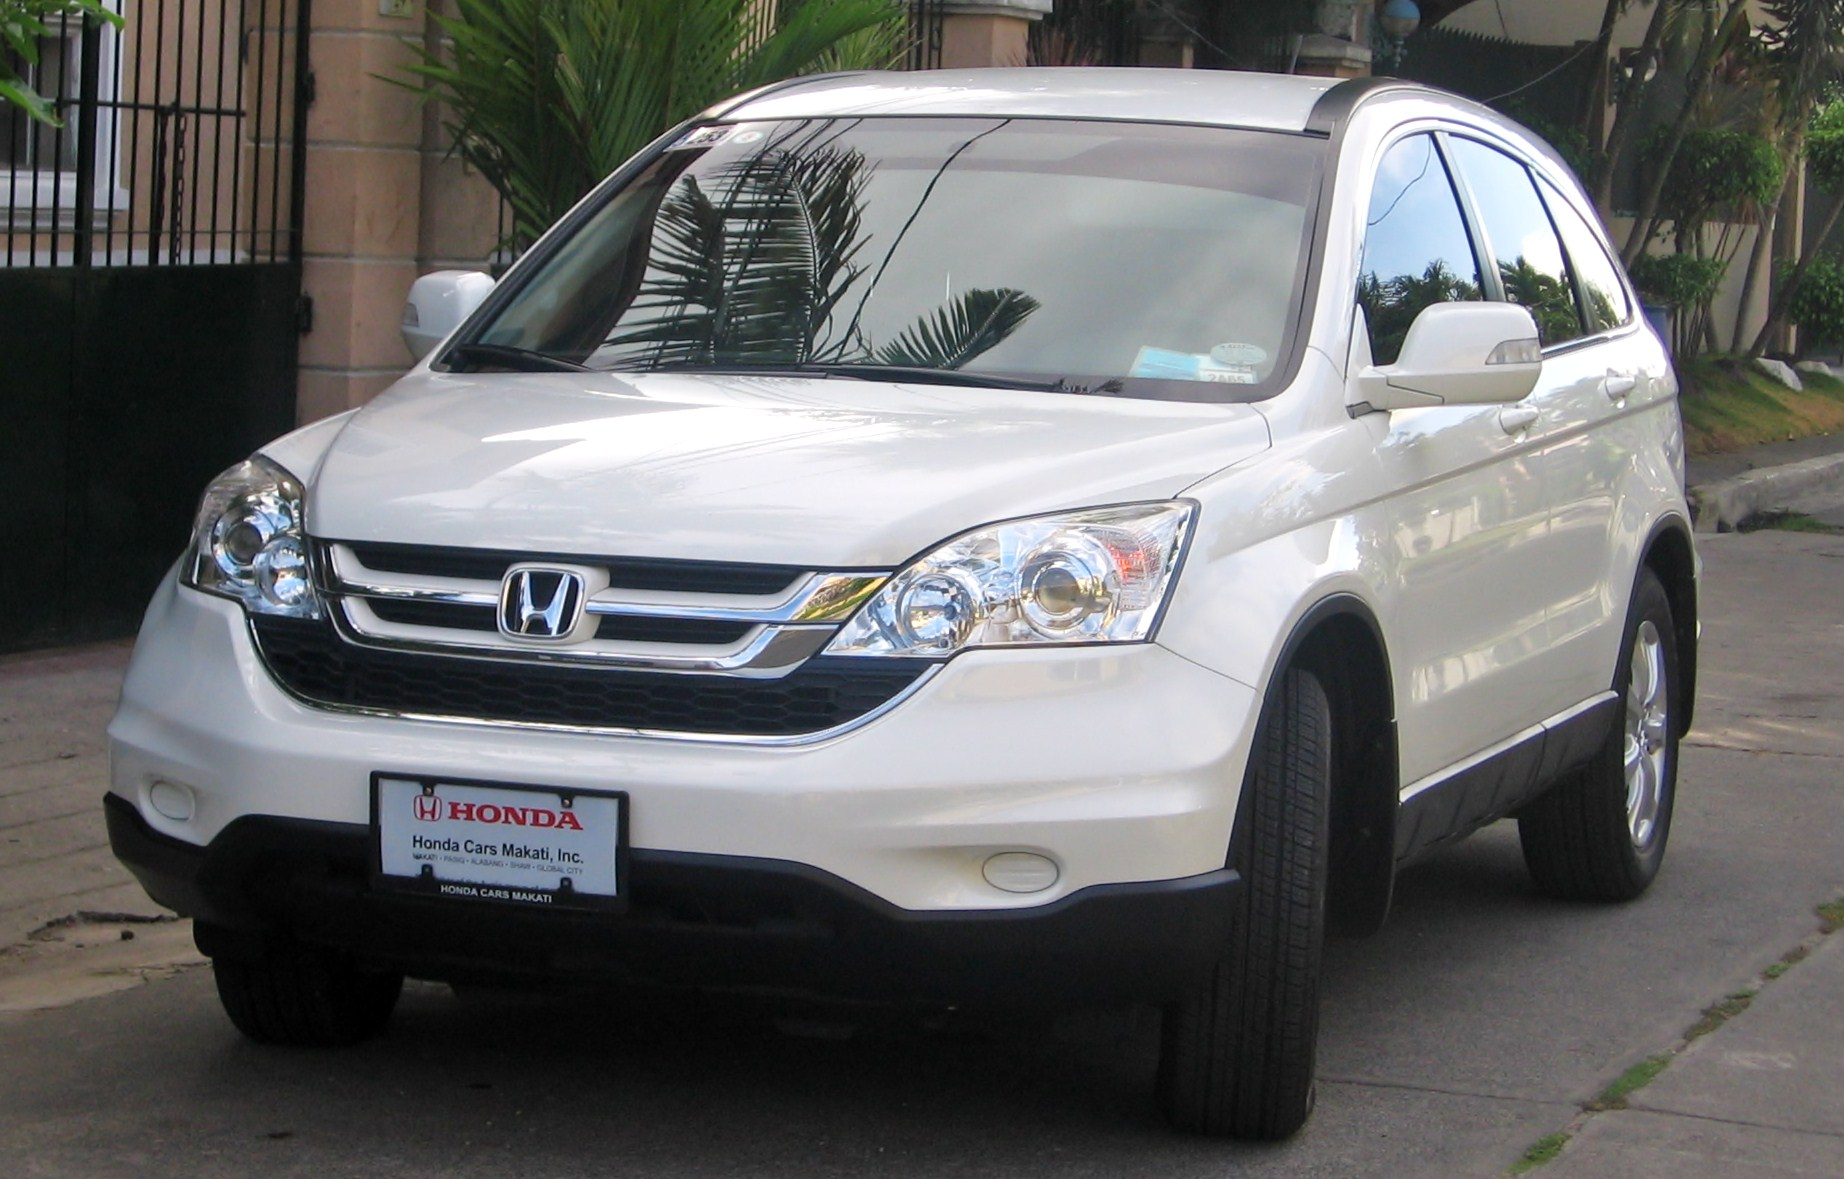 Honda CRV Wallpaper HD For Desktop